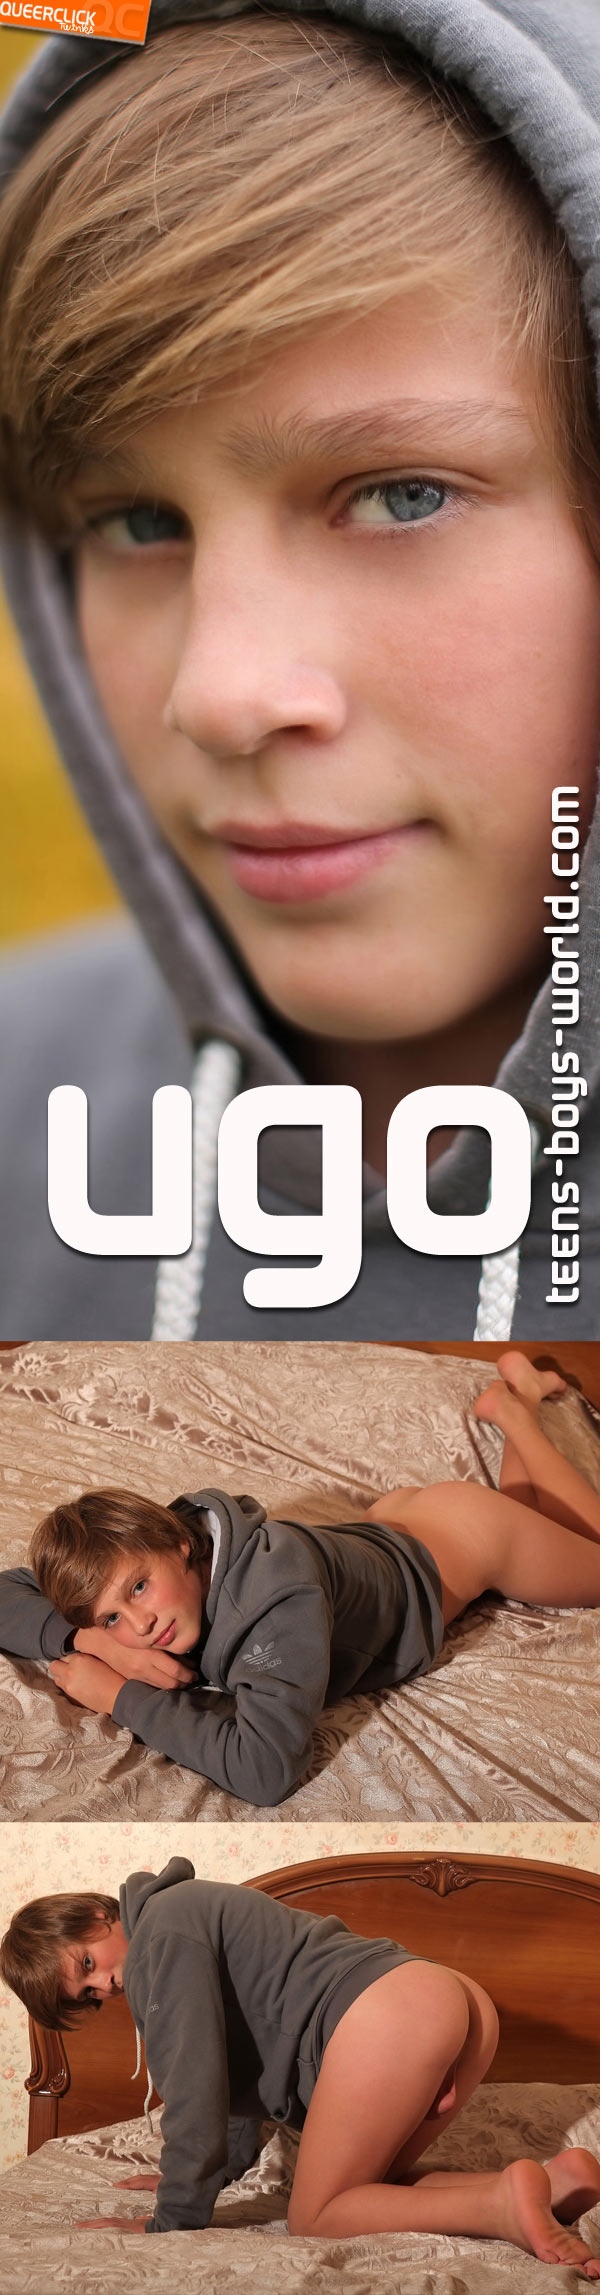 Teens Boys World: Ugo